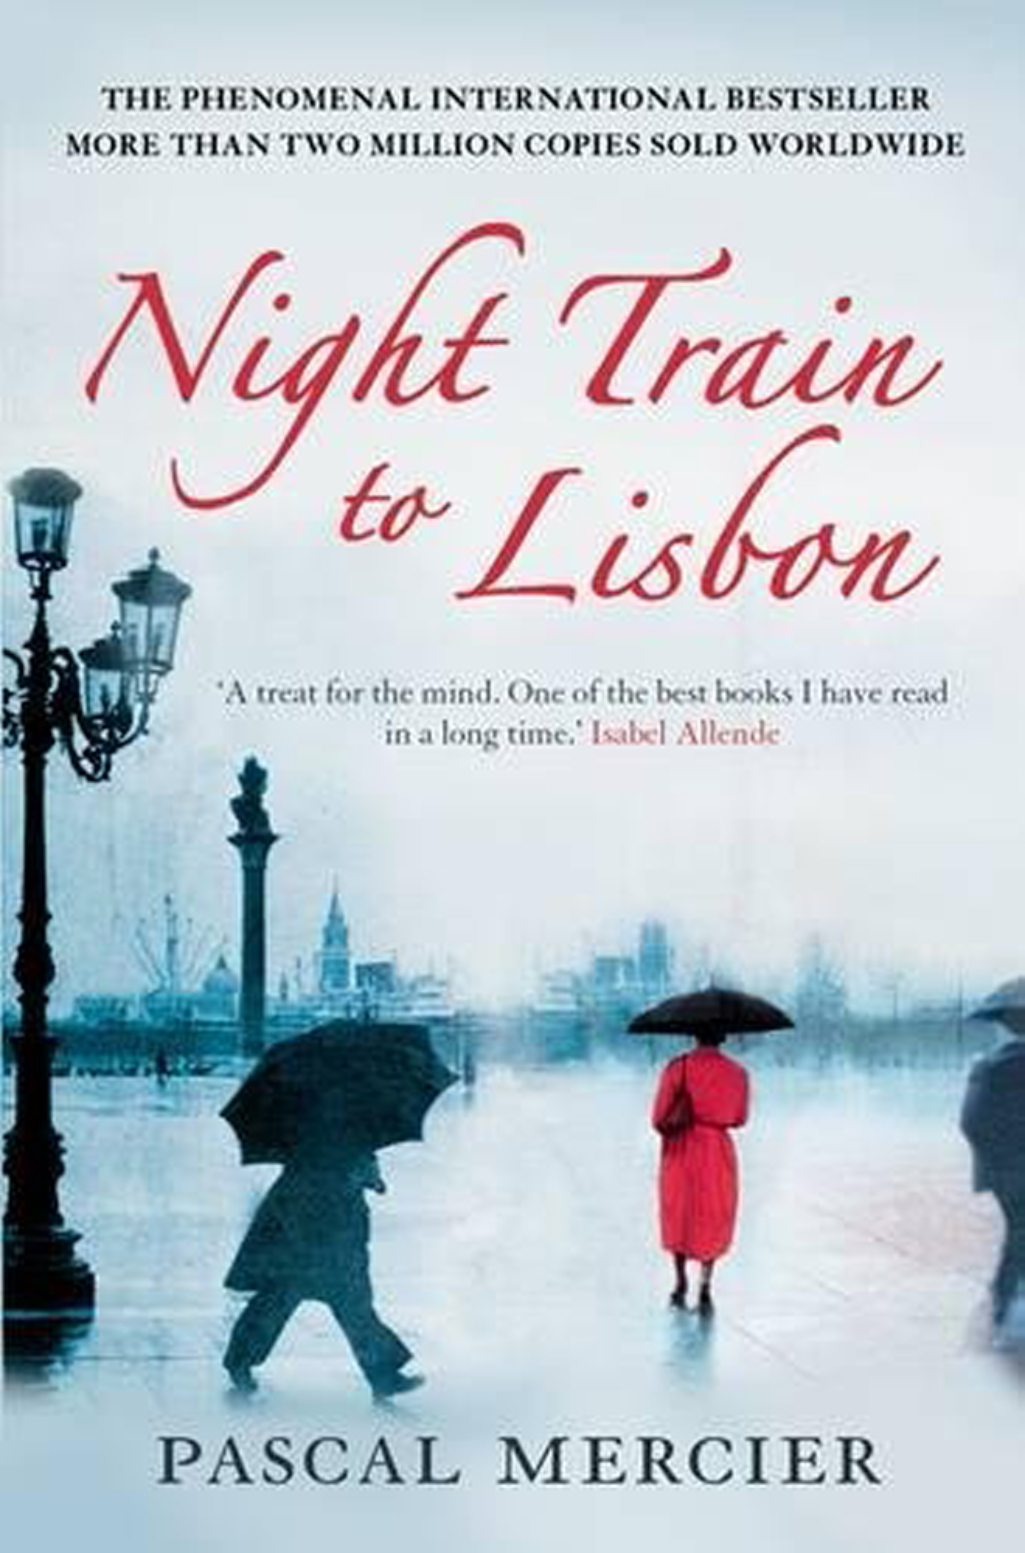 The Night Train to Lisbon by Pascal Mercier | © Atlantic Books